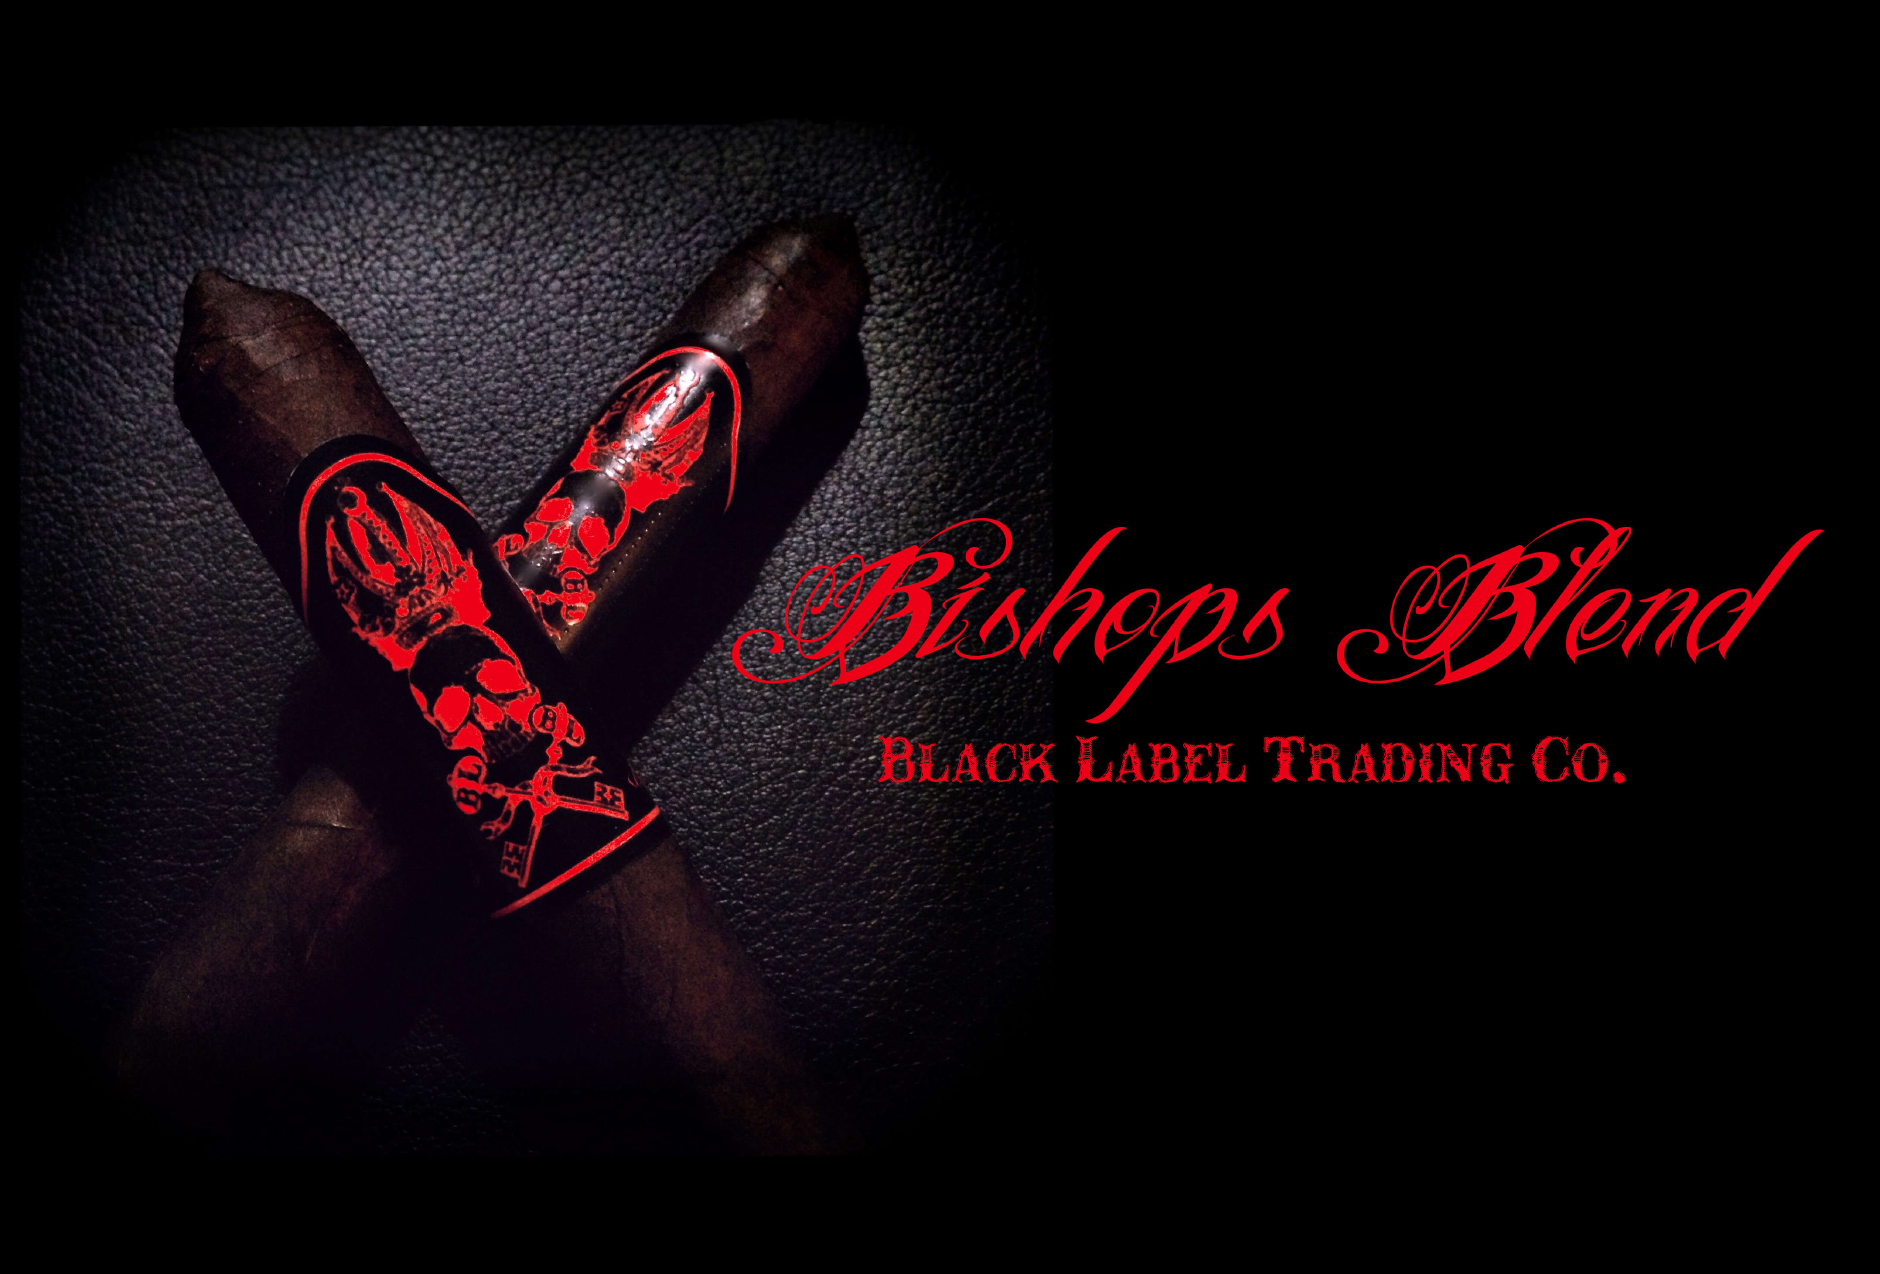 Black Label Trading Company Bishops Blend feature